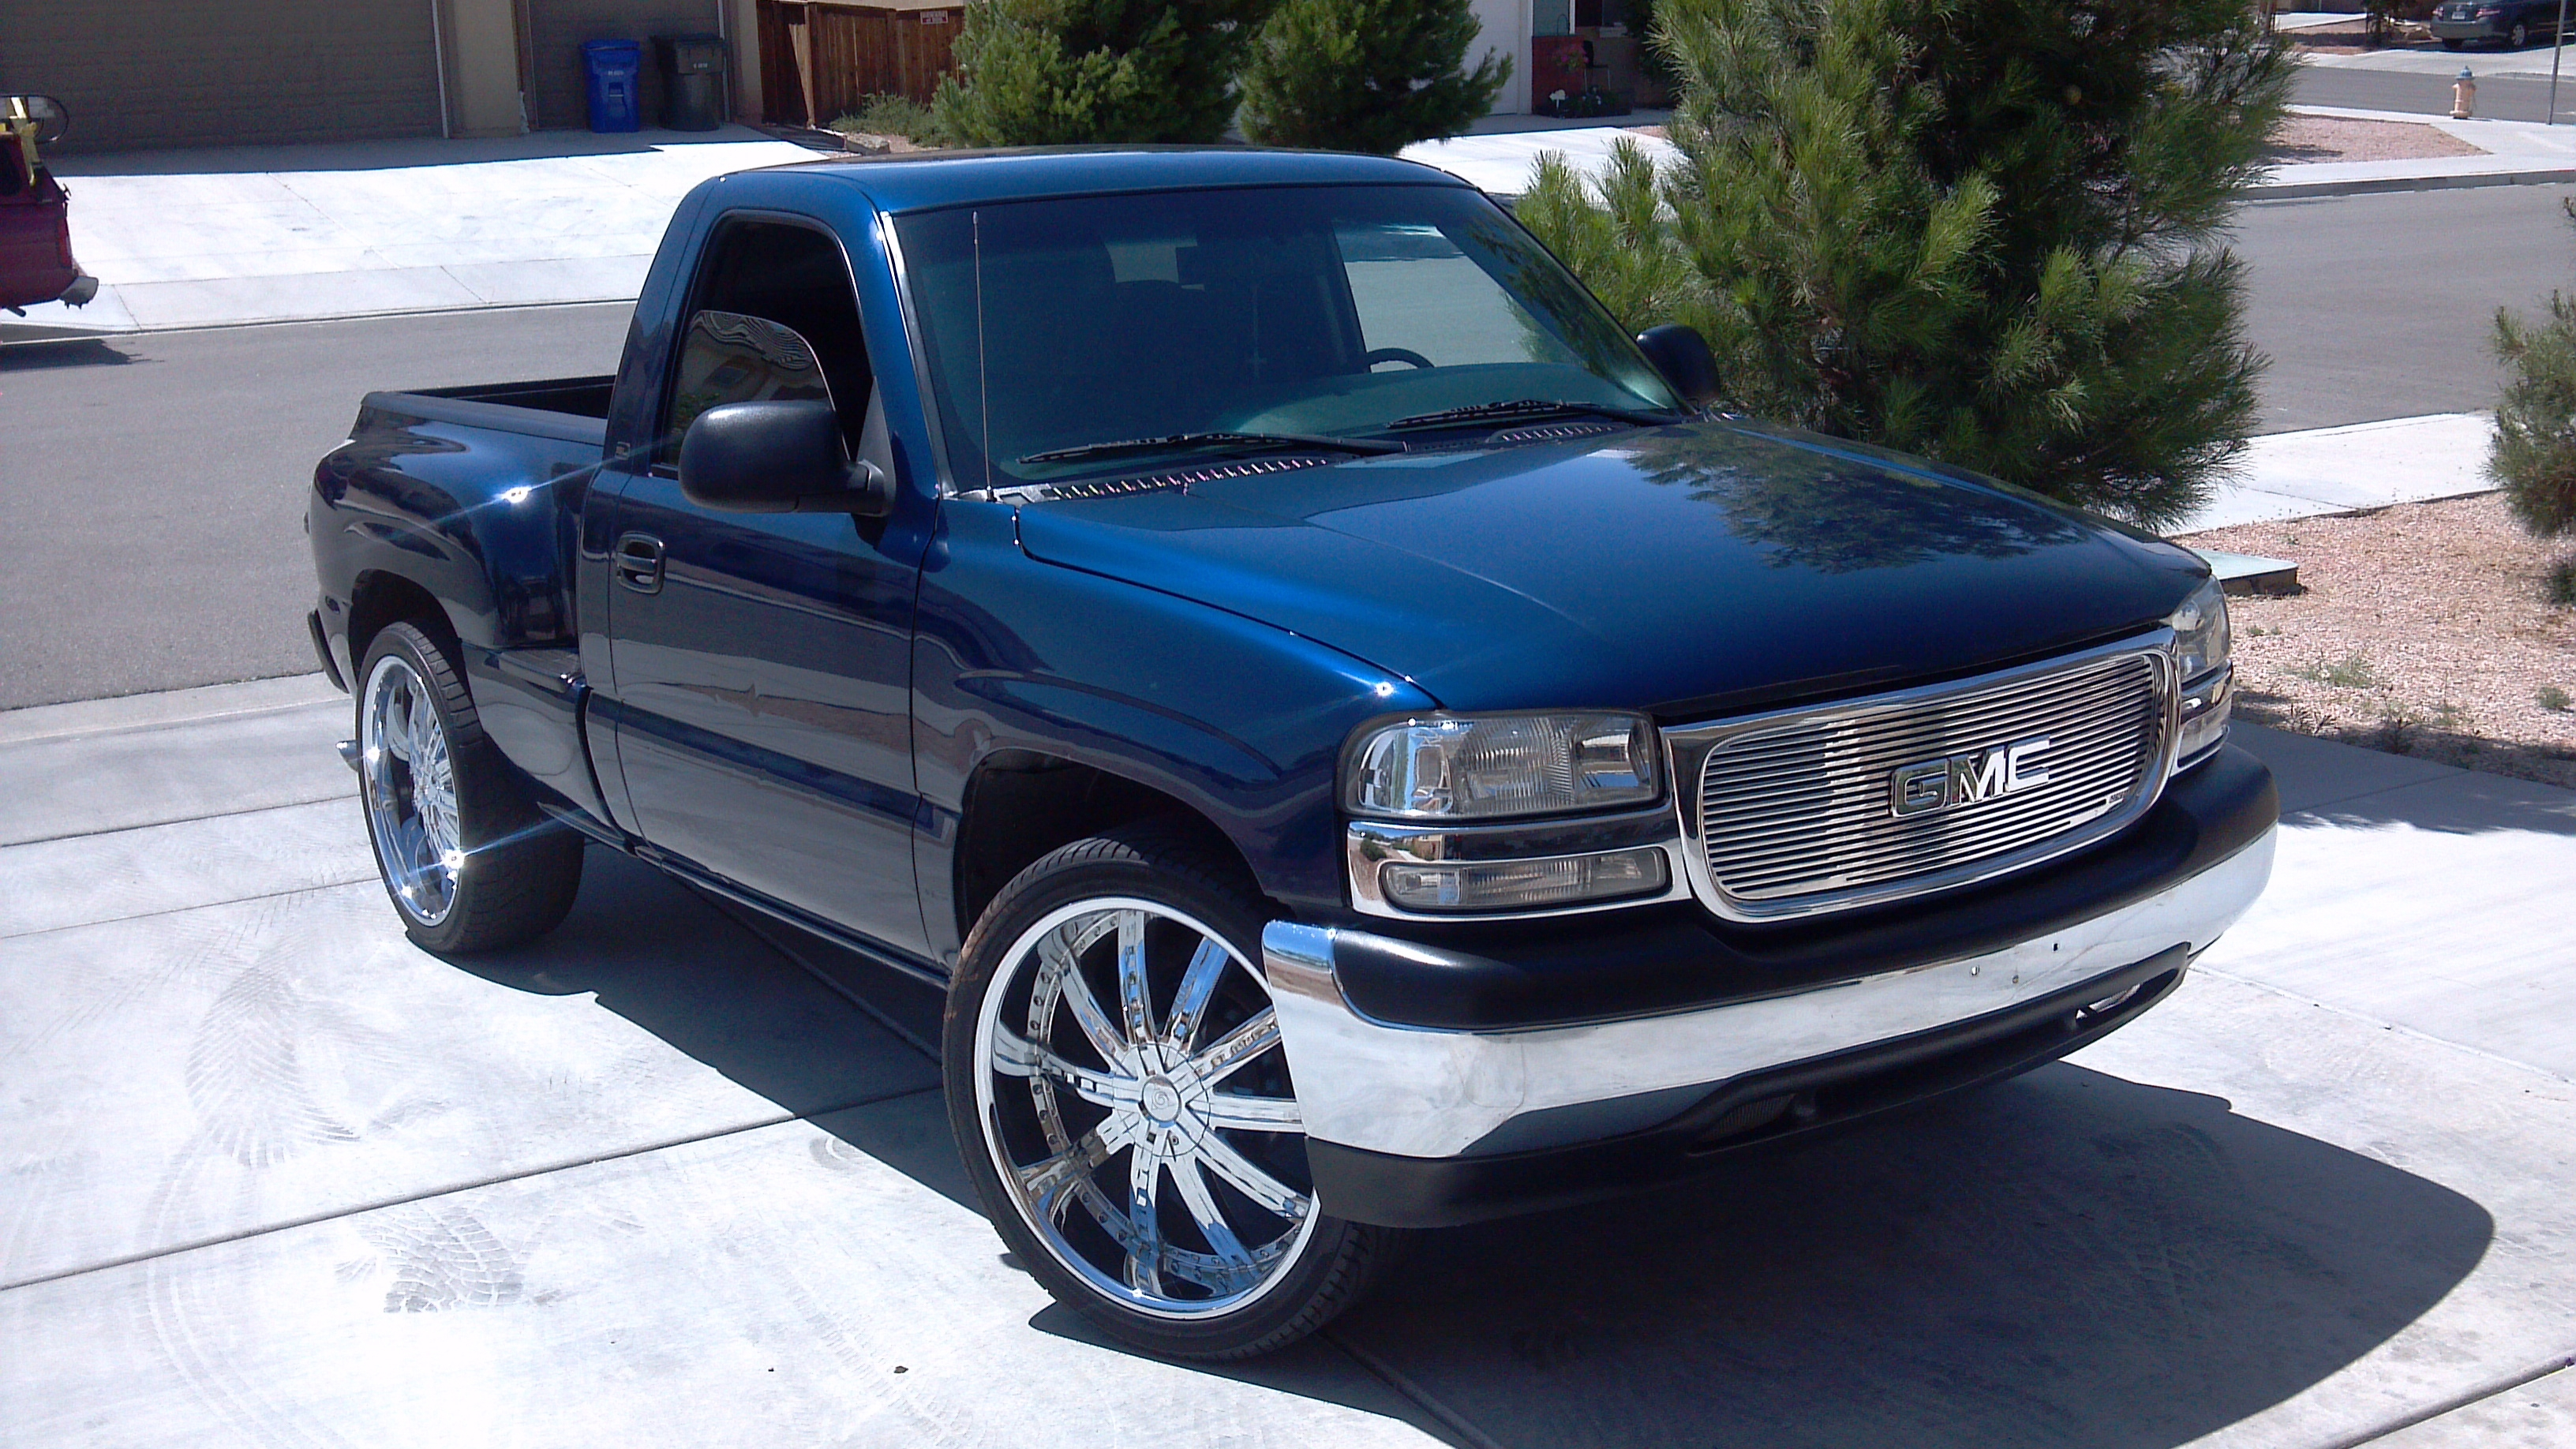 luis hdst 2000 gmc sierra 1500 regular cab specs photos. Black Bedroom Furniture Sets. Home Design Ideas